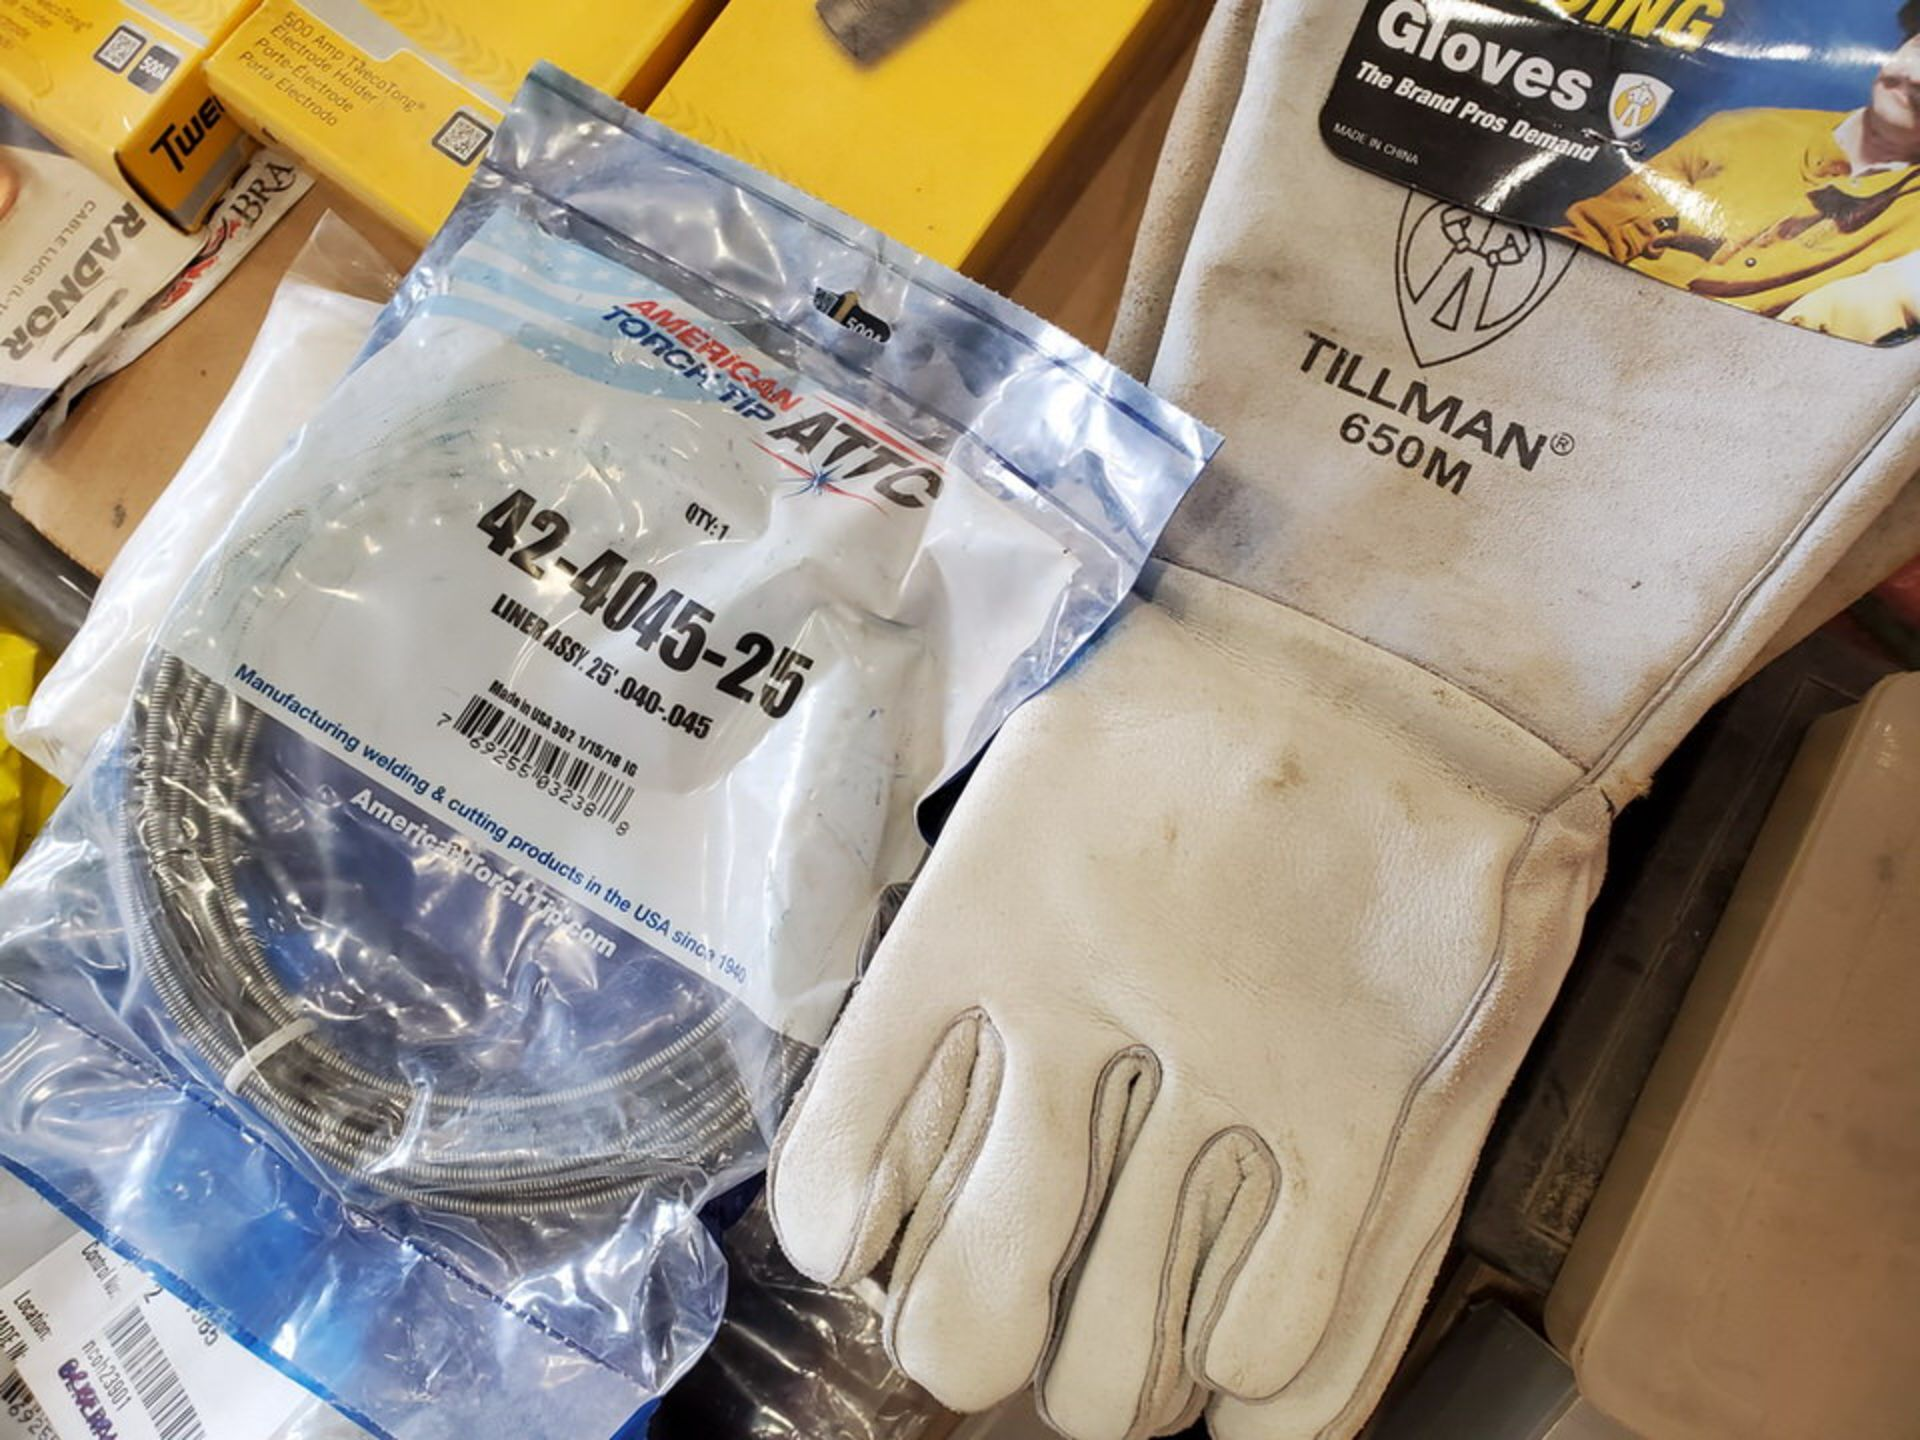 Assorted Welding Material To Include But Not Limited To: Electrode Holders, Gloves, Hoses, Rods, - Image 6 of 12